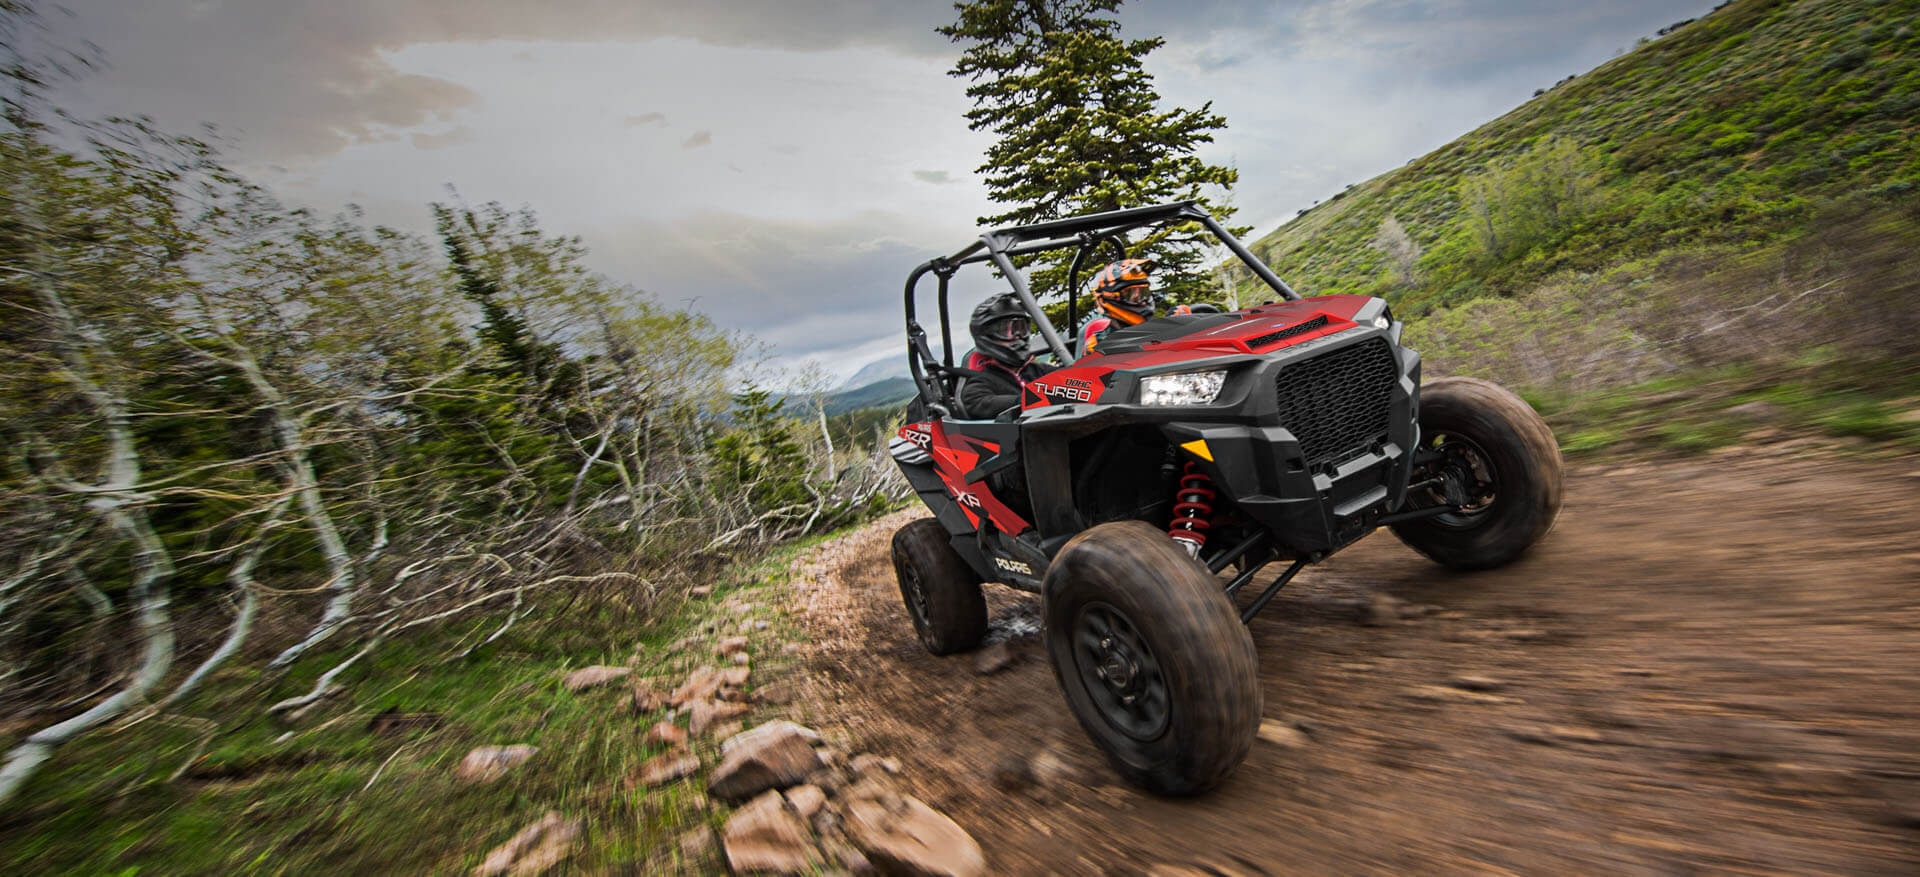 rzr-xp-turbo-fox-edition-location-3-lg